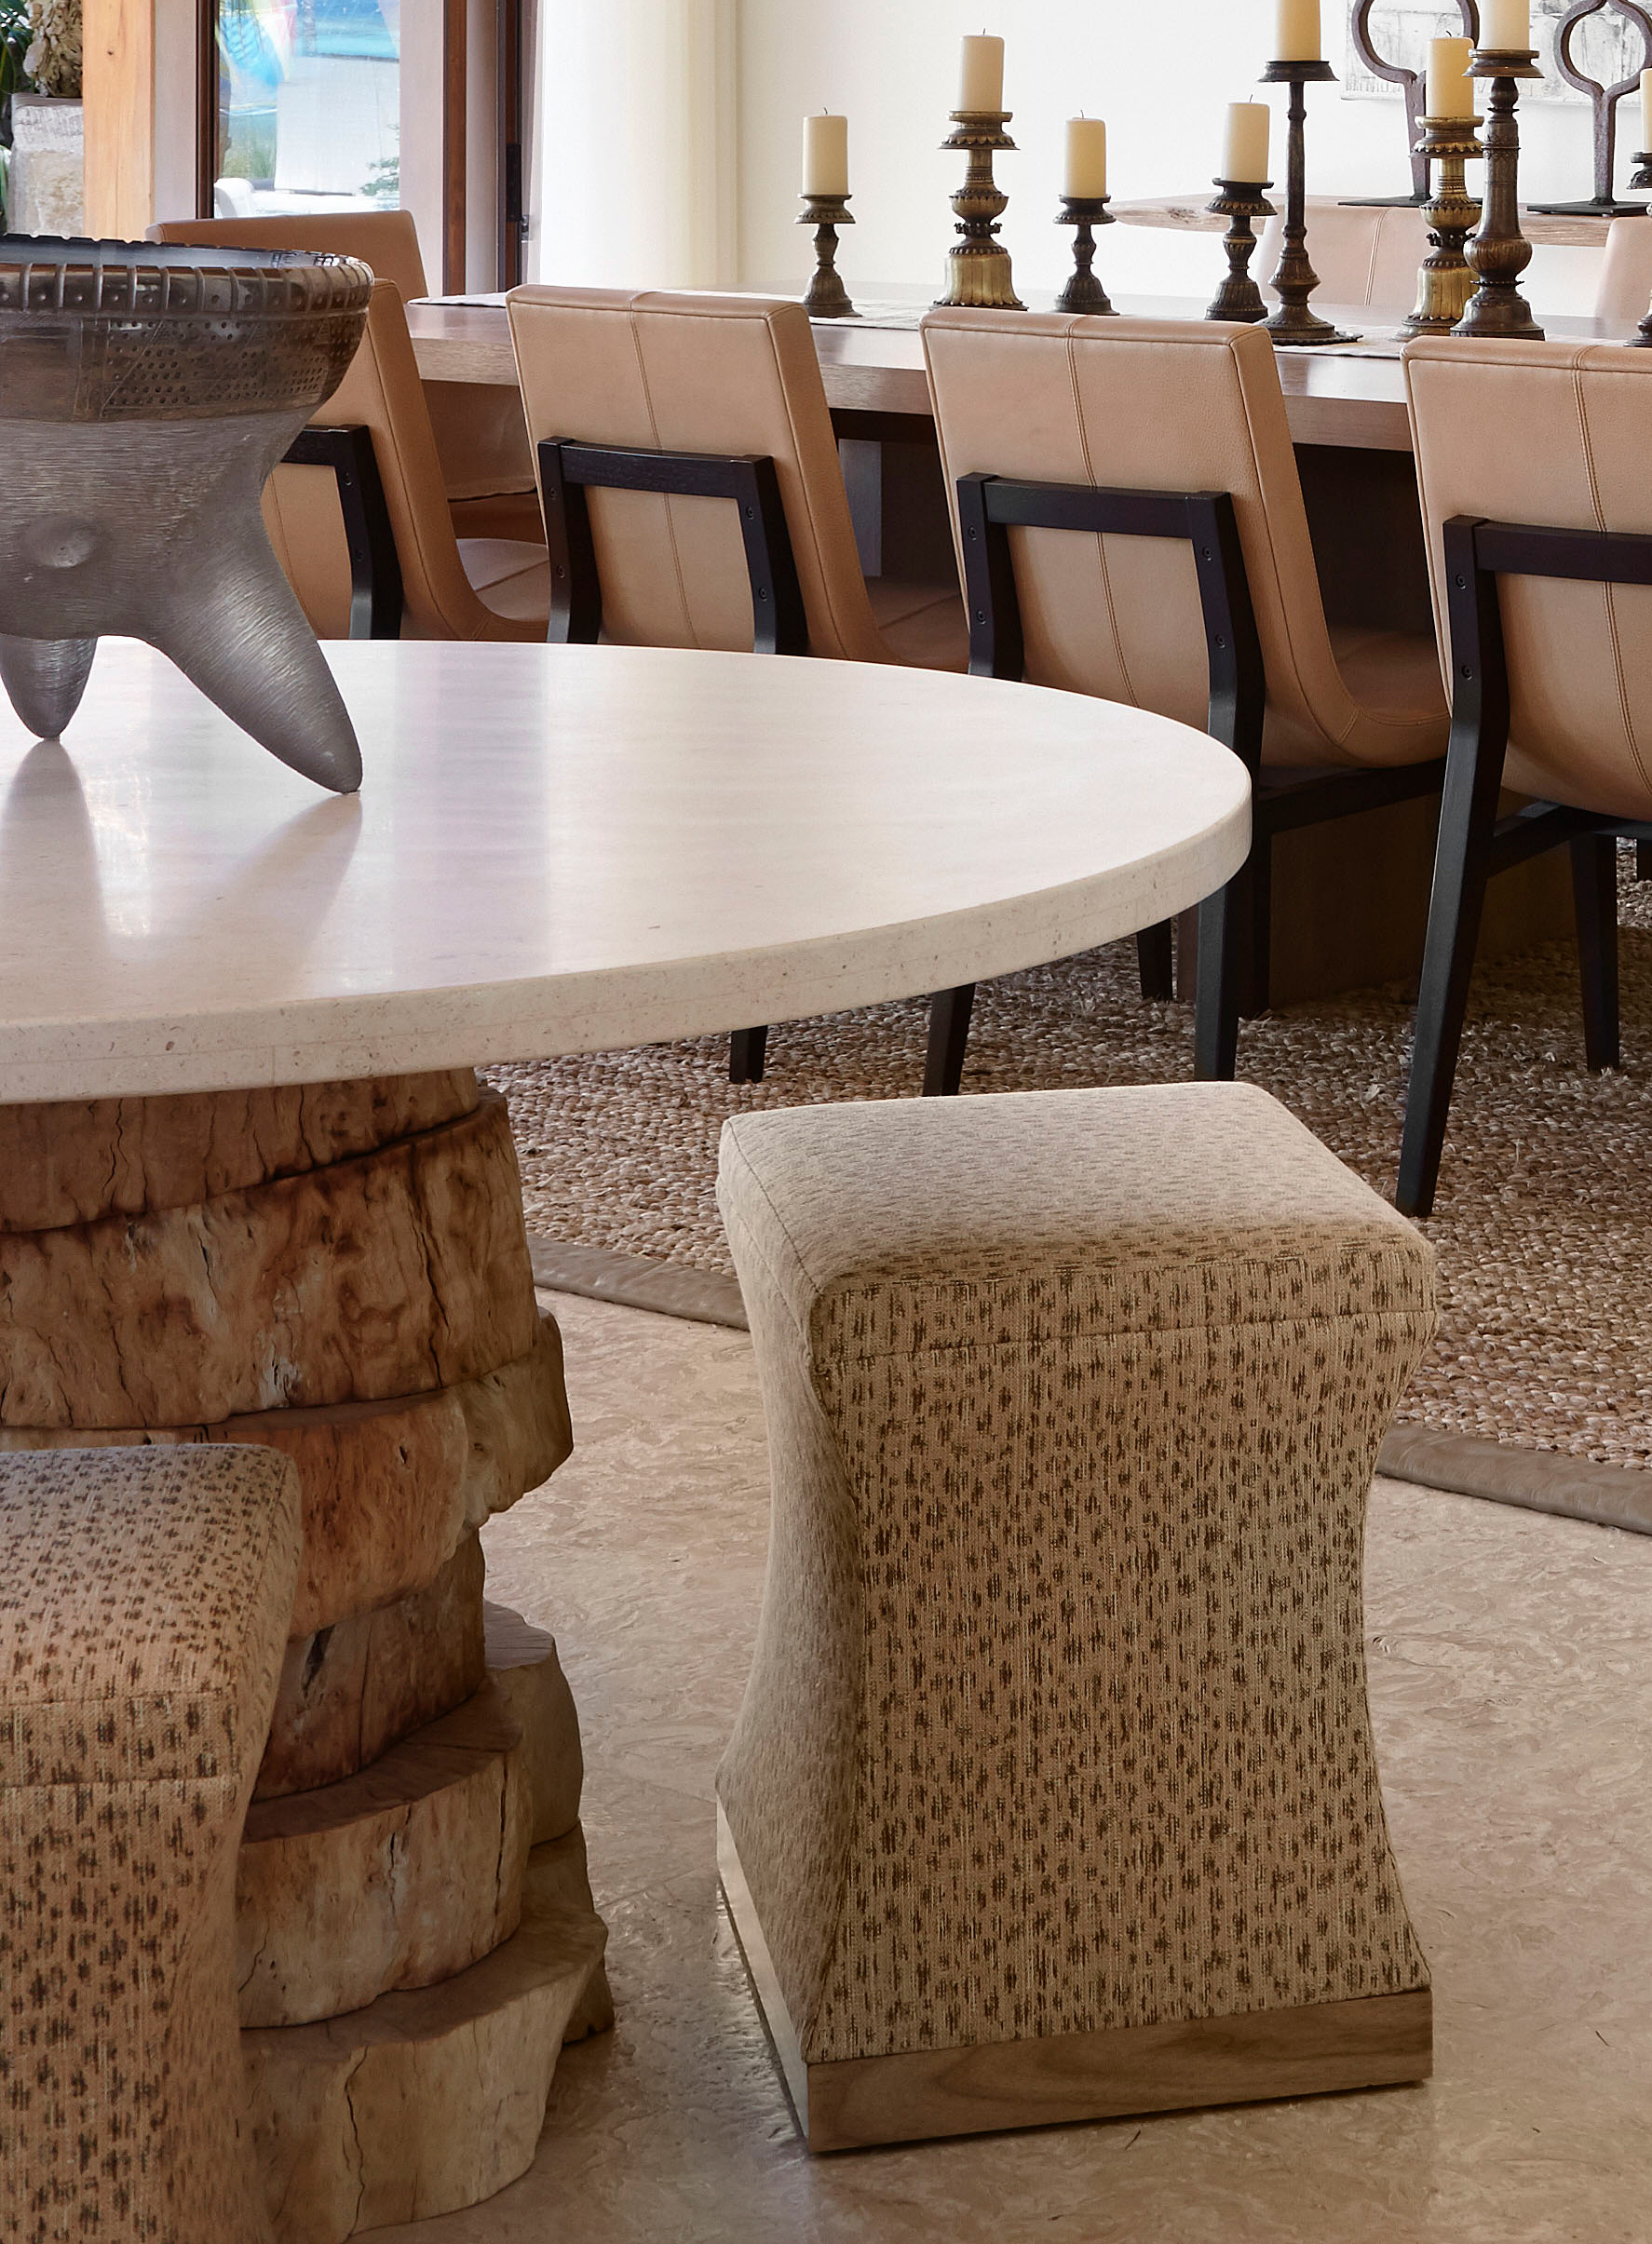 Custom Made Stool by Luxury Interior Designer in Chicago - Soucie Horner, Ltd.